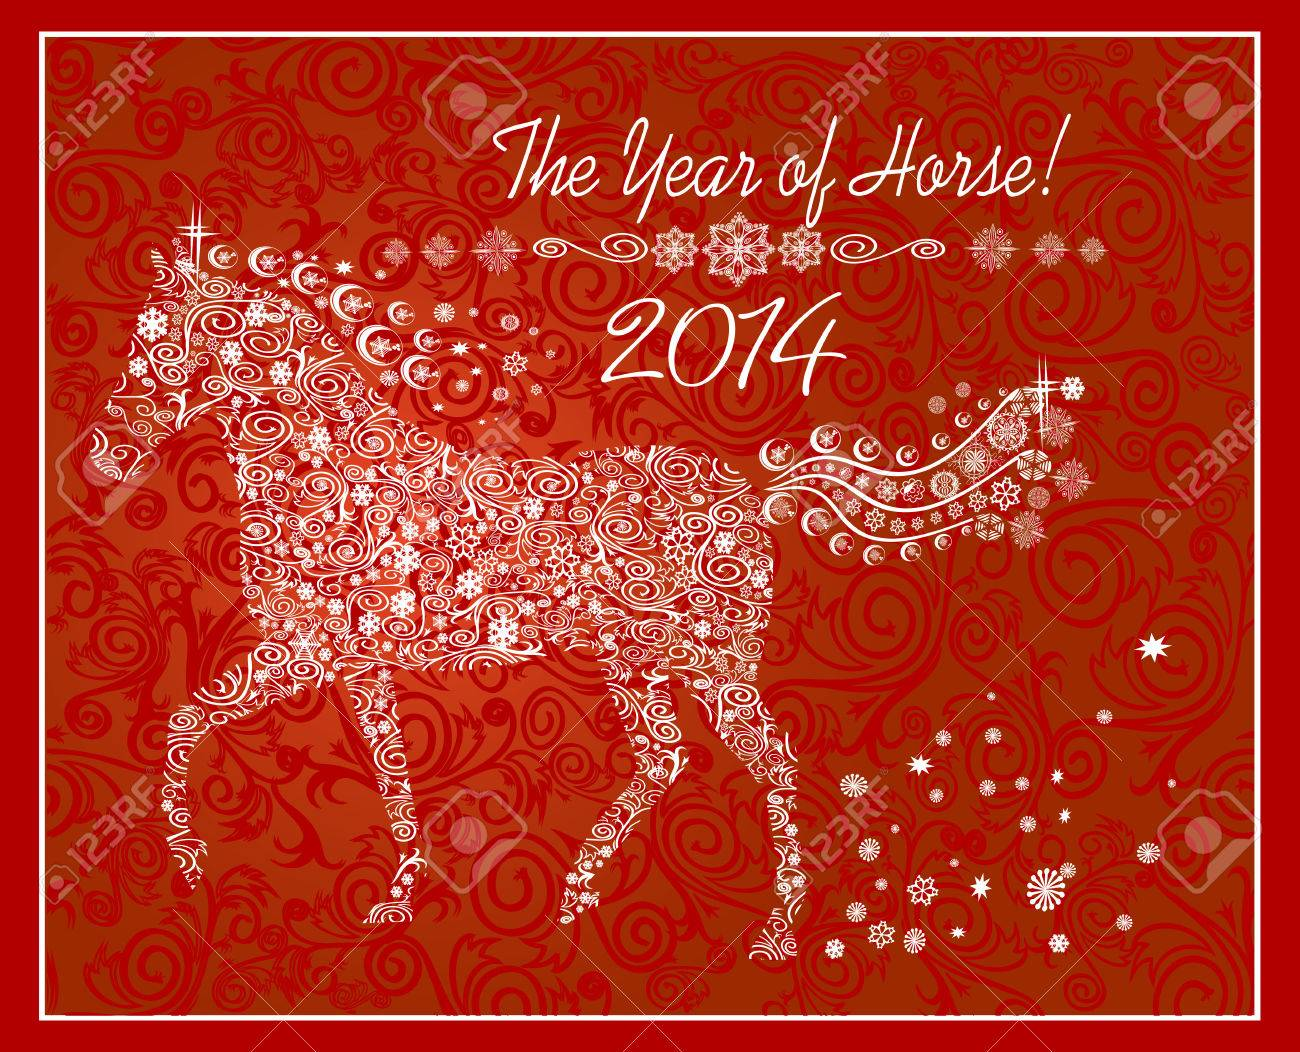 Year of horse  Happy new year 2014 Stock Vector - 23893996